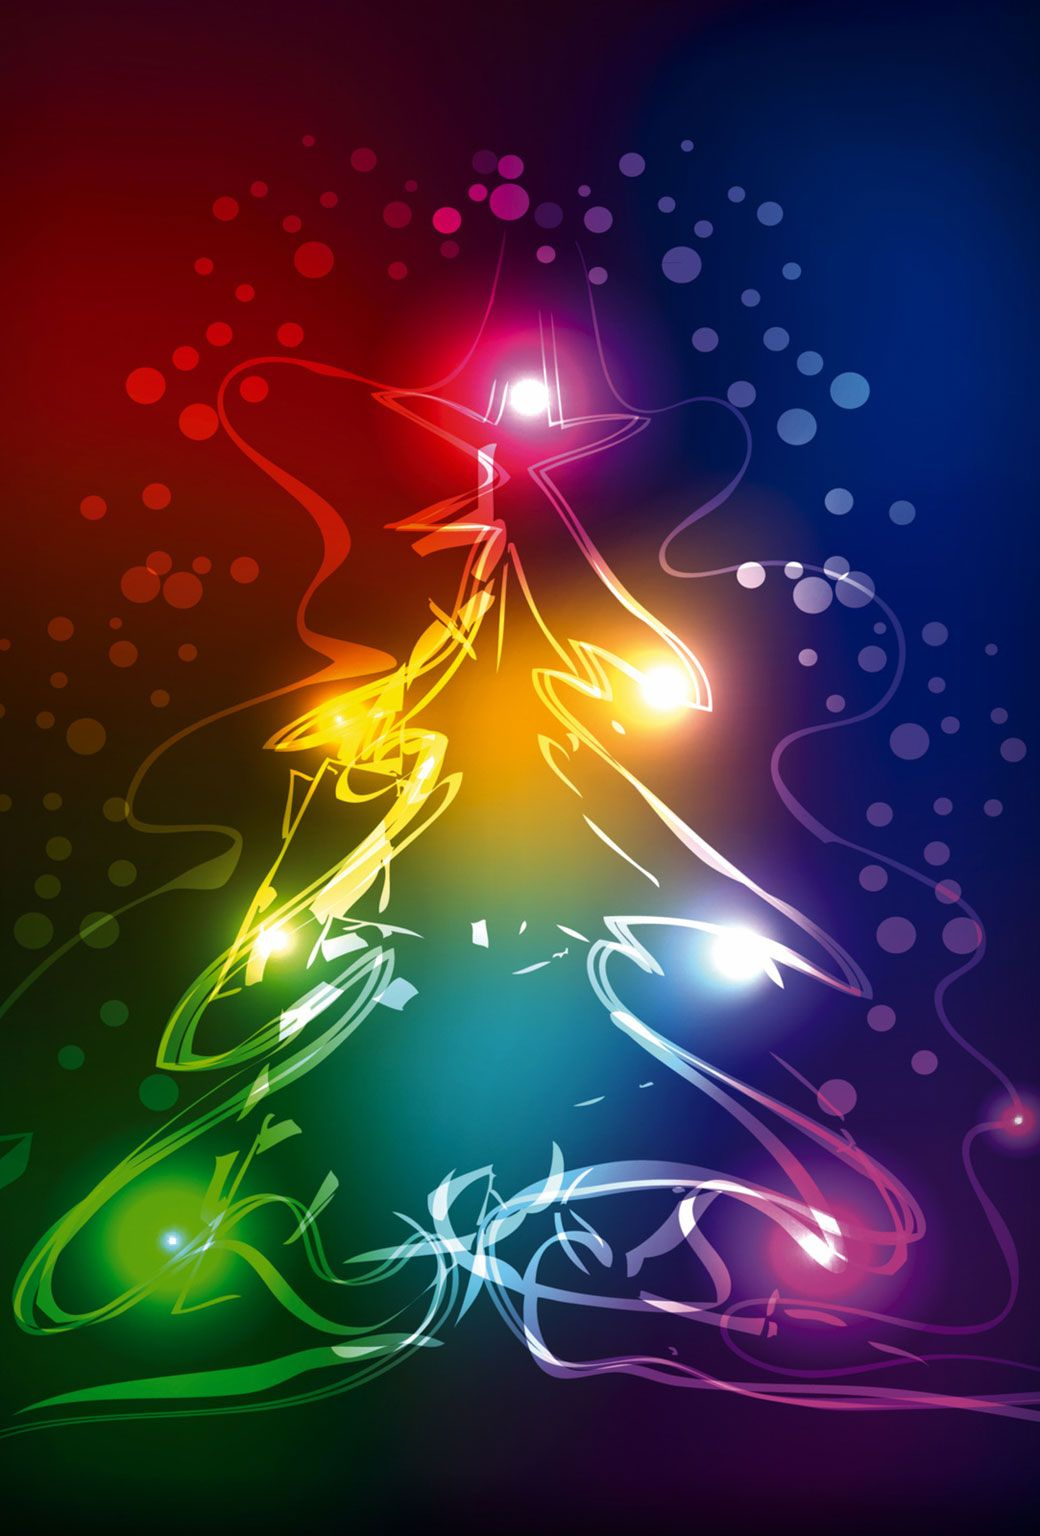 Christmas tree wallpaper, Merry